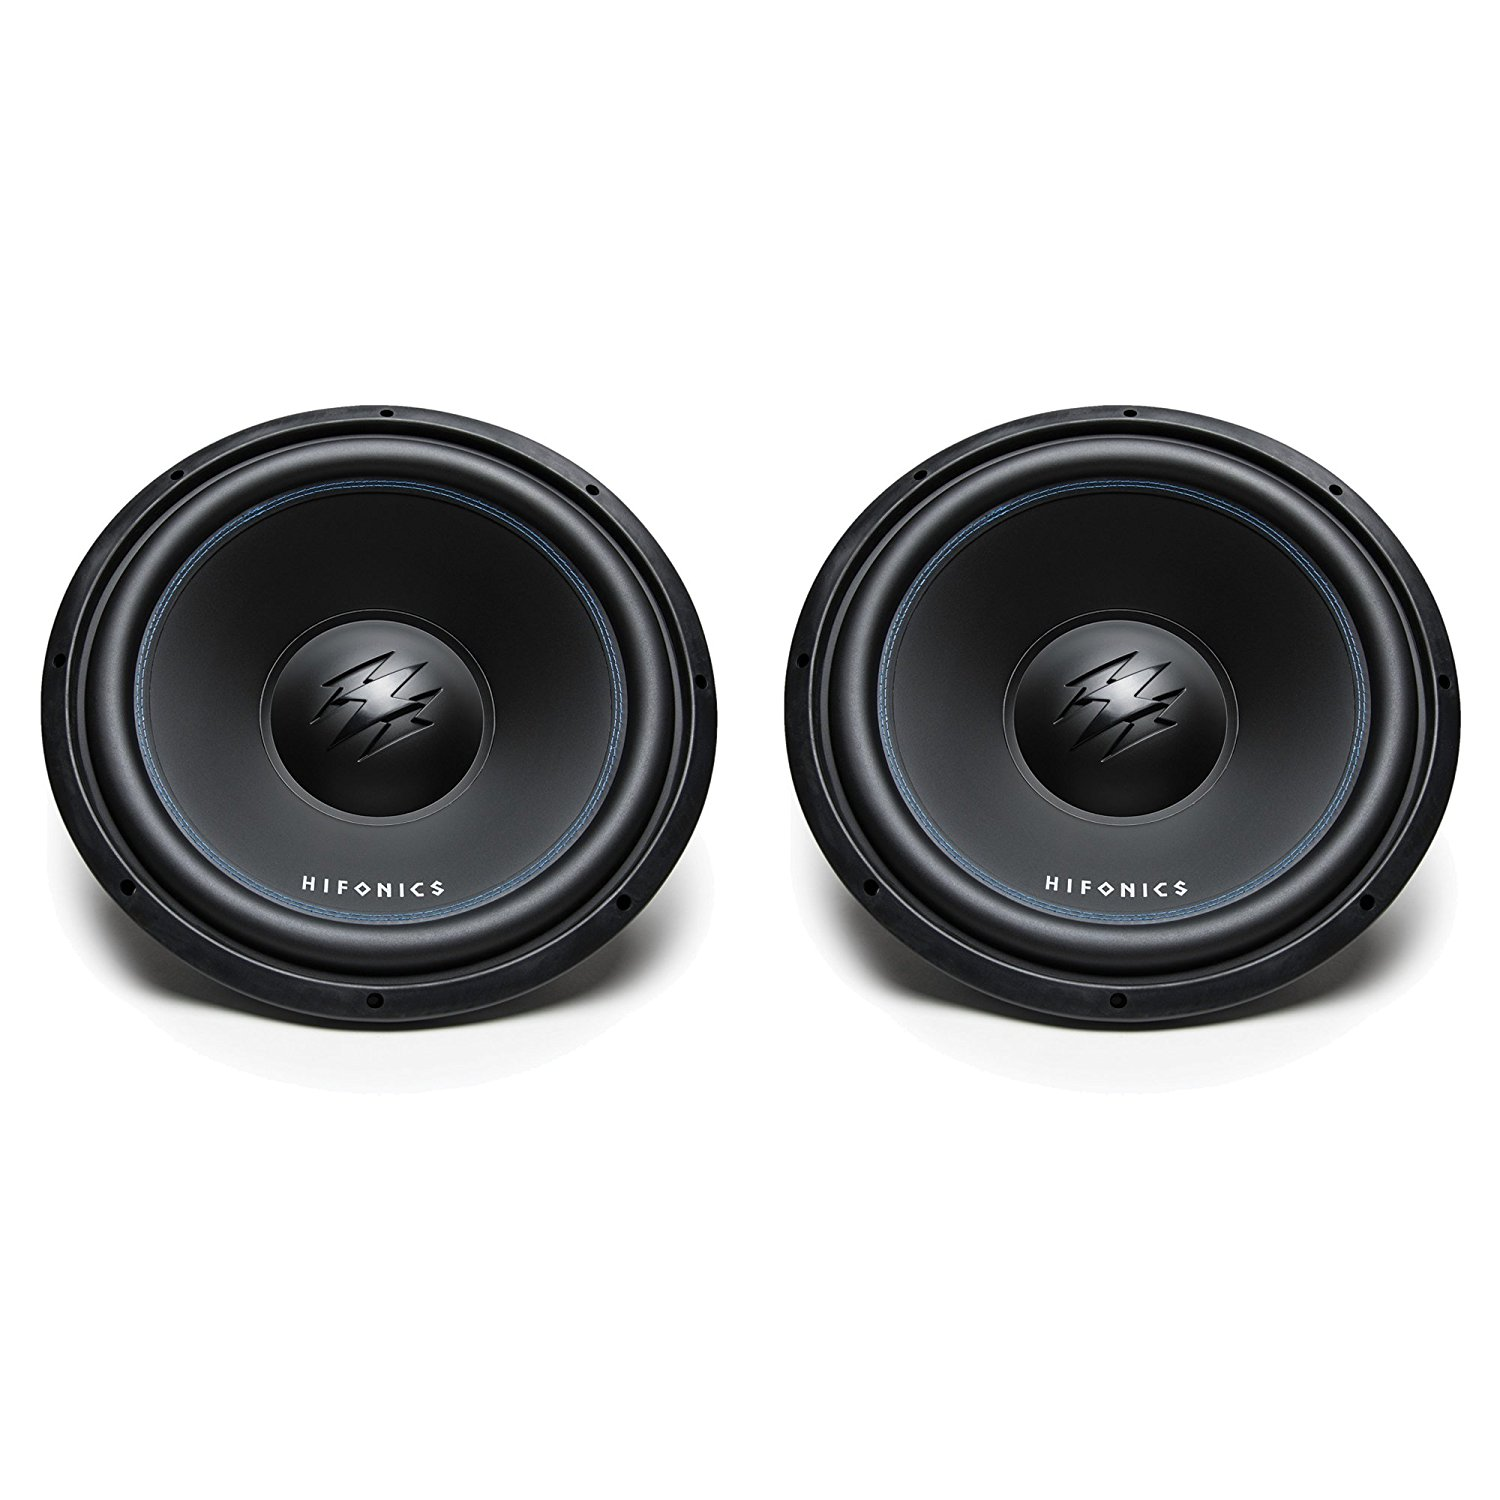 Cheap Hifonics Subwoofer, find Hifonics Subwoofer deals on line at